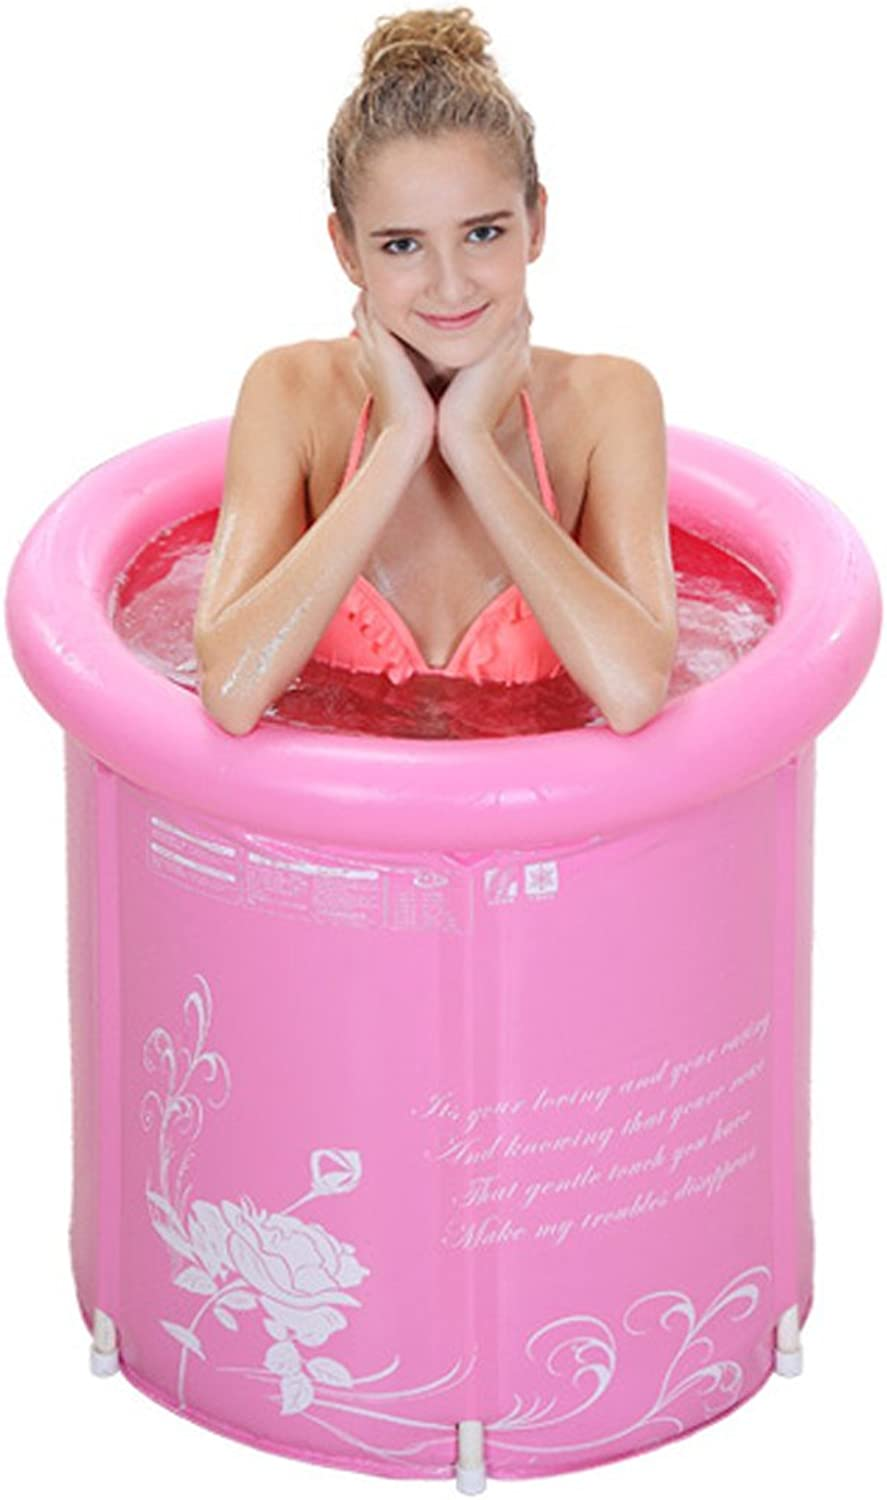 Inflatable bathtub GJ- Thickened Water Folding Bath Tub Adult (color   Pink, Size   6570cm)